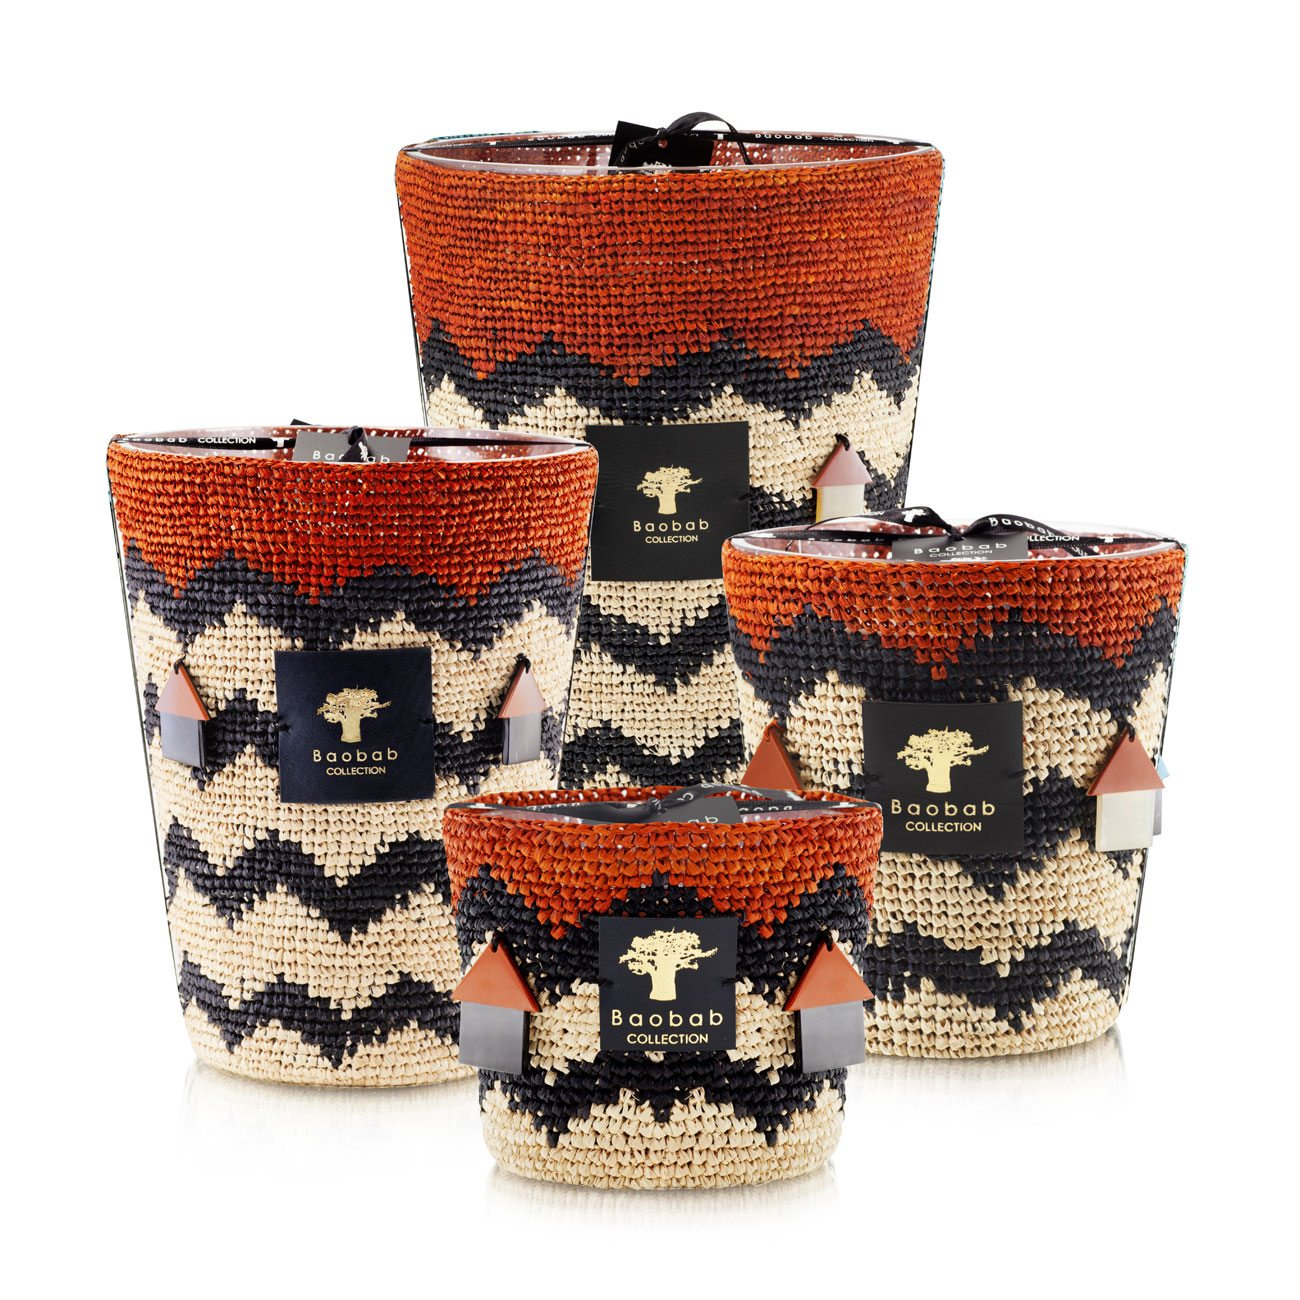 Baobab Limited Edition Trano Candle Collection